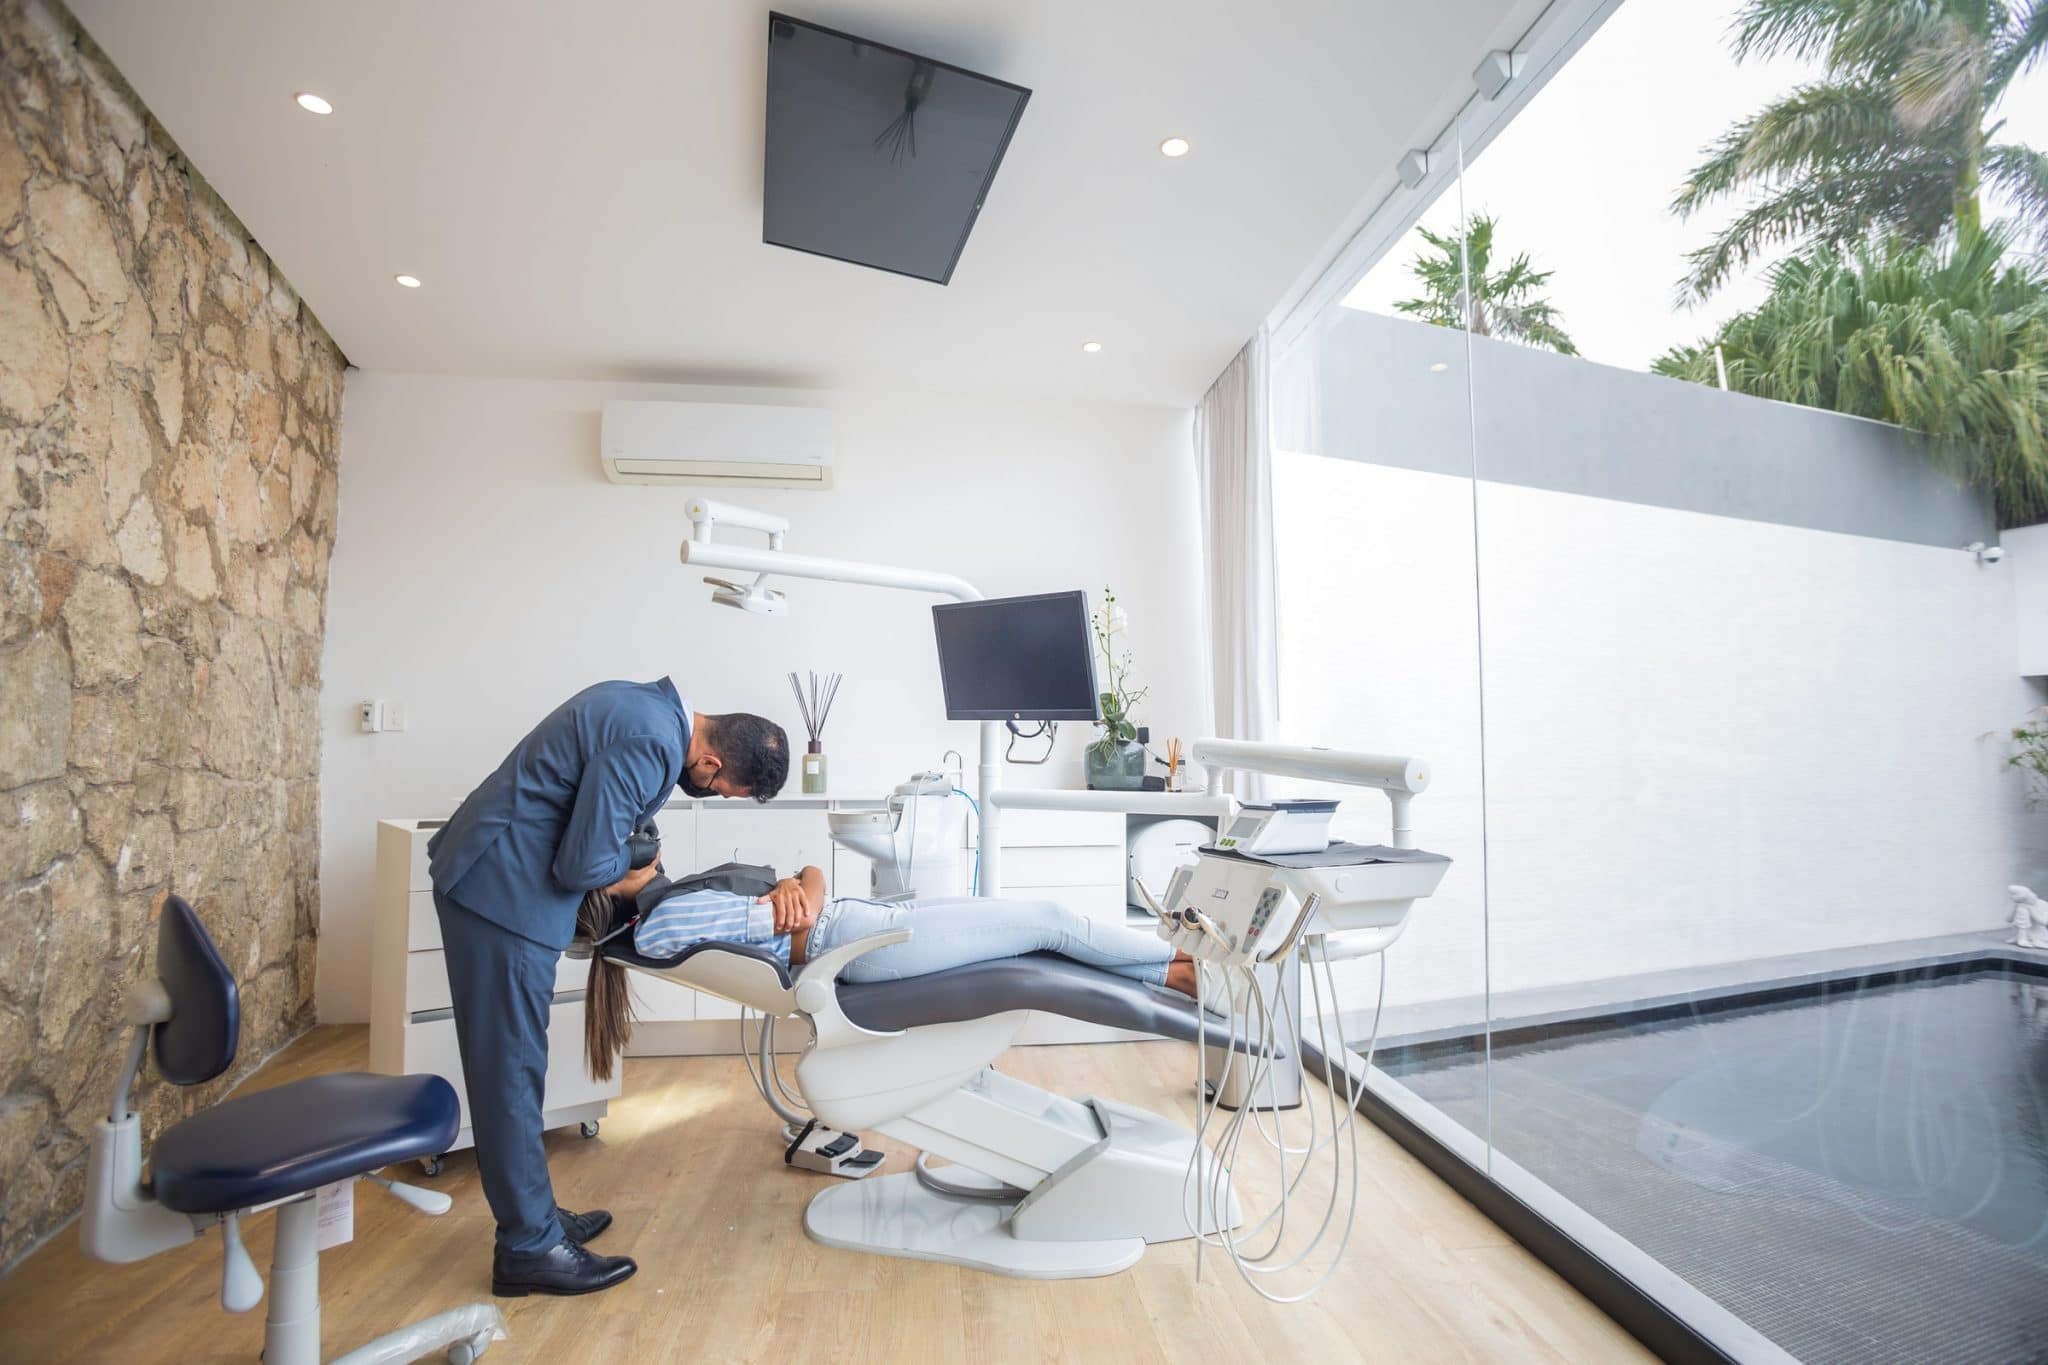 Looking for a medical clinic heres how to pick the right one